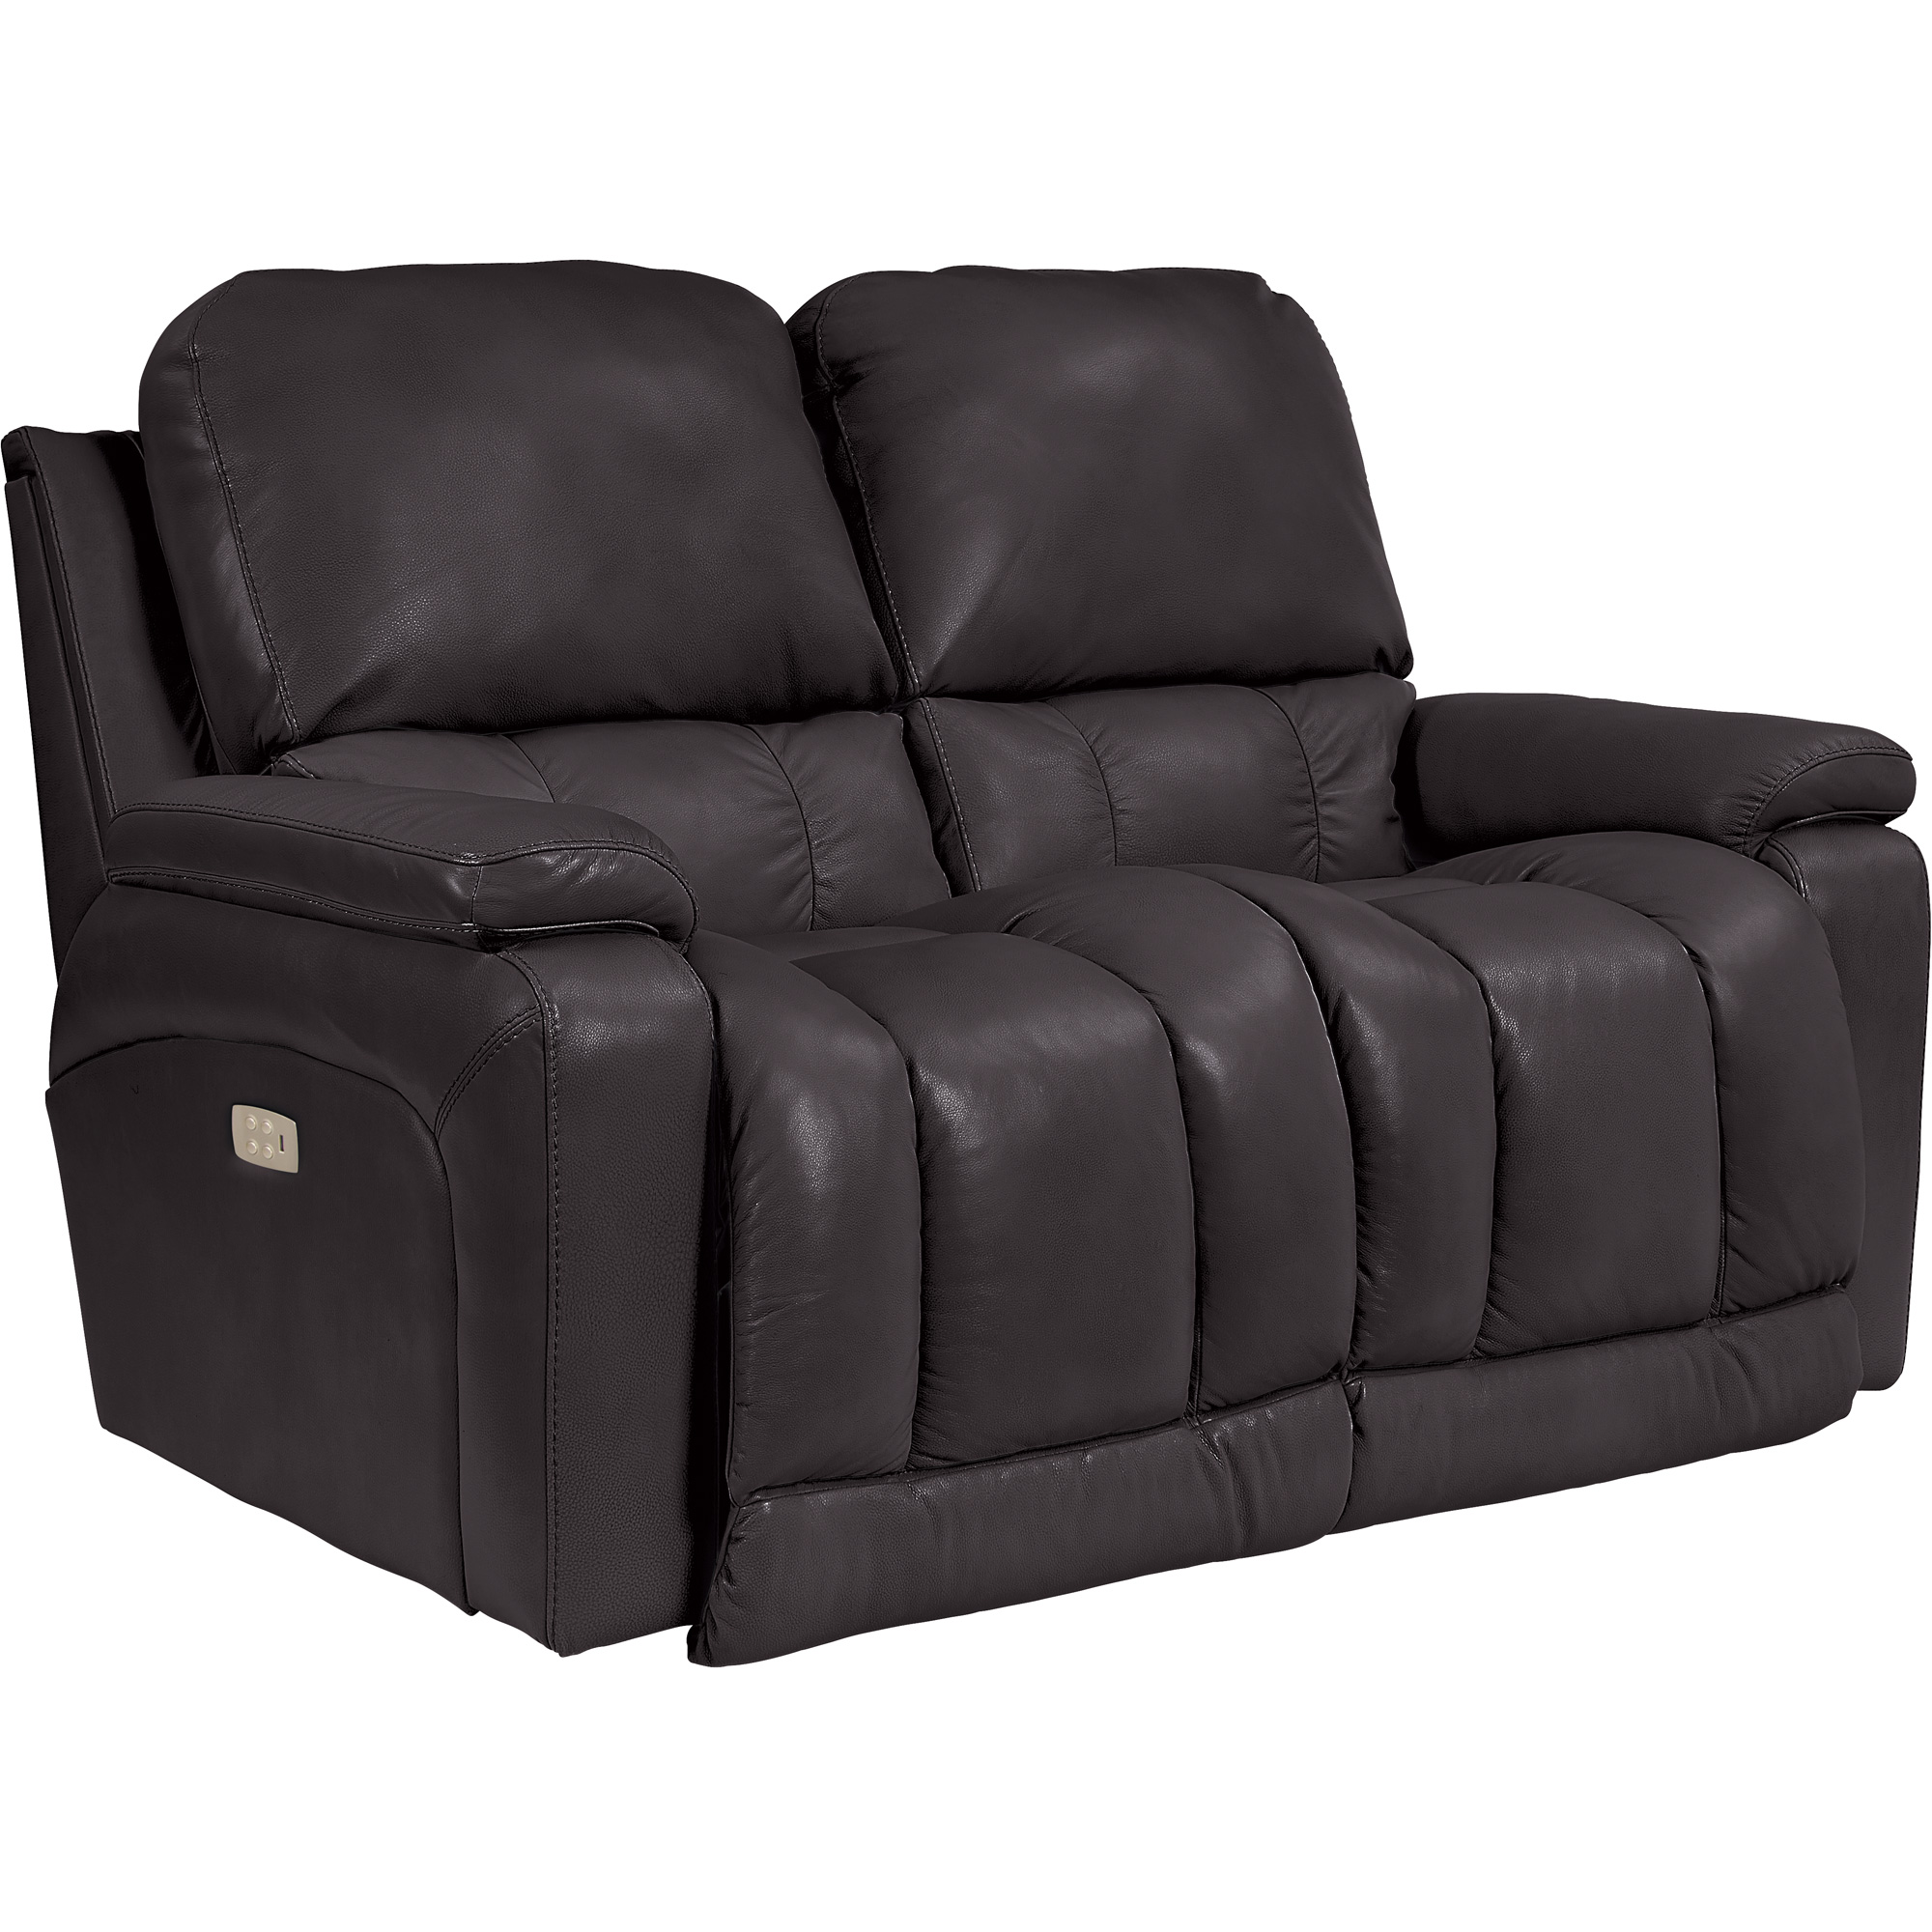 La-Z-Boy | Greyson Chocolate Power Plus Reclining Loveseat Sofa